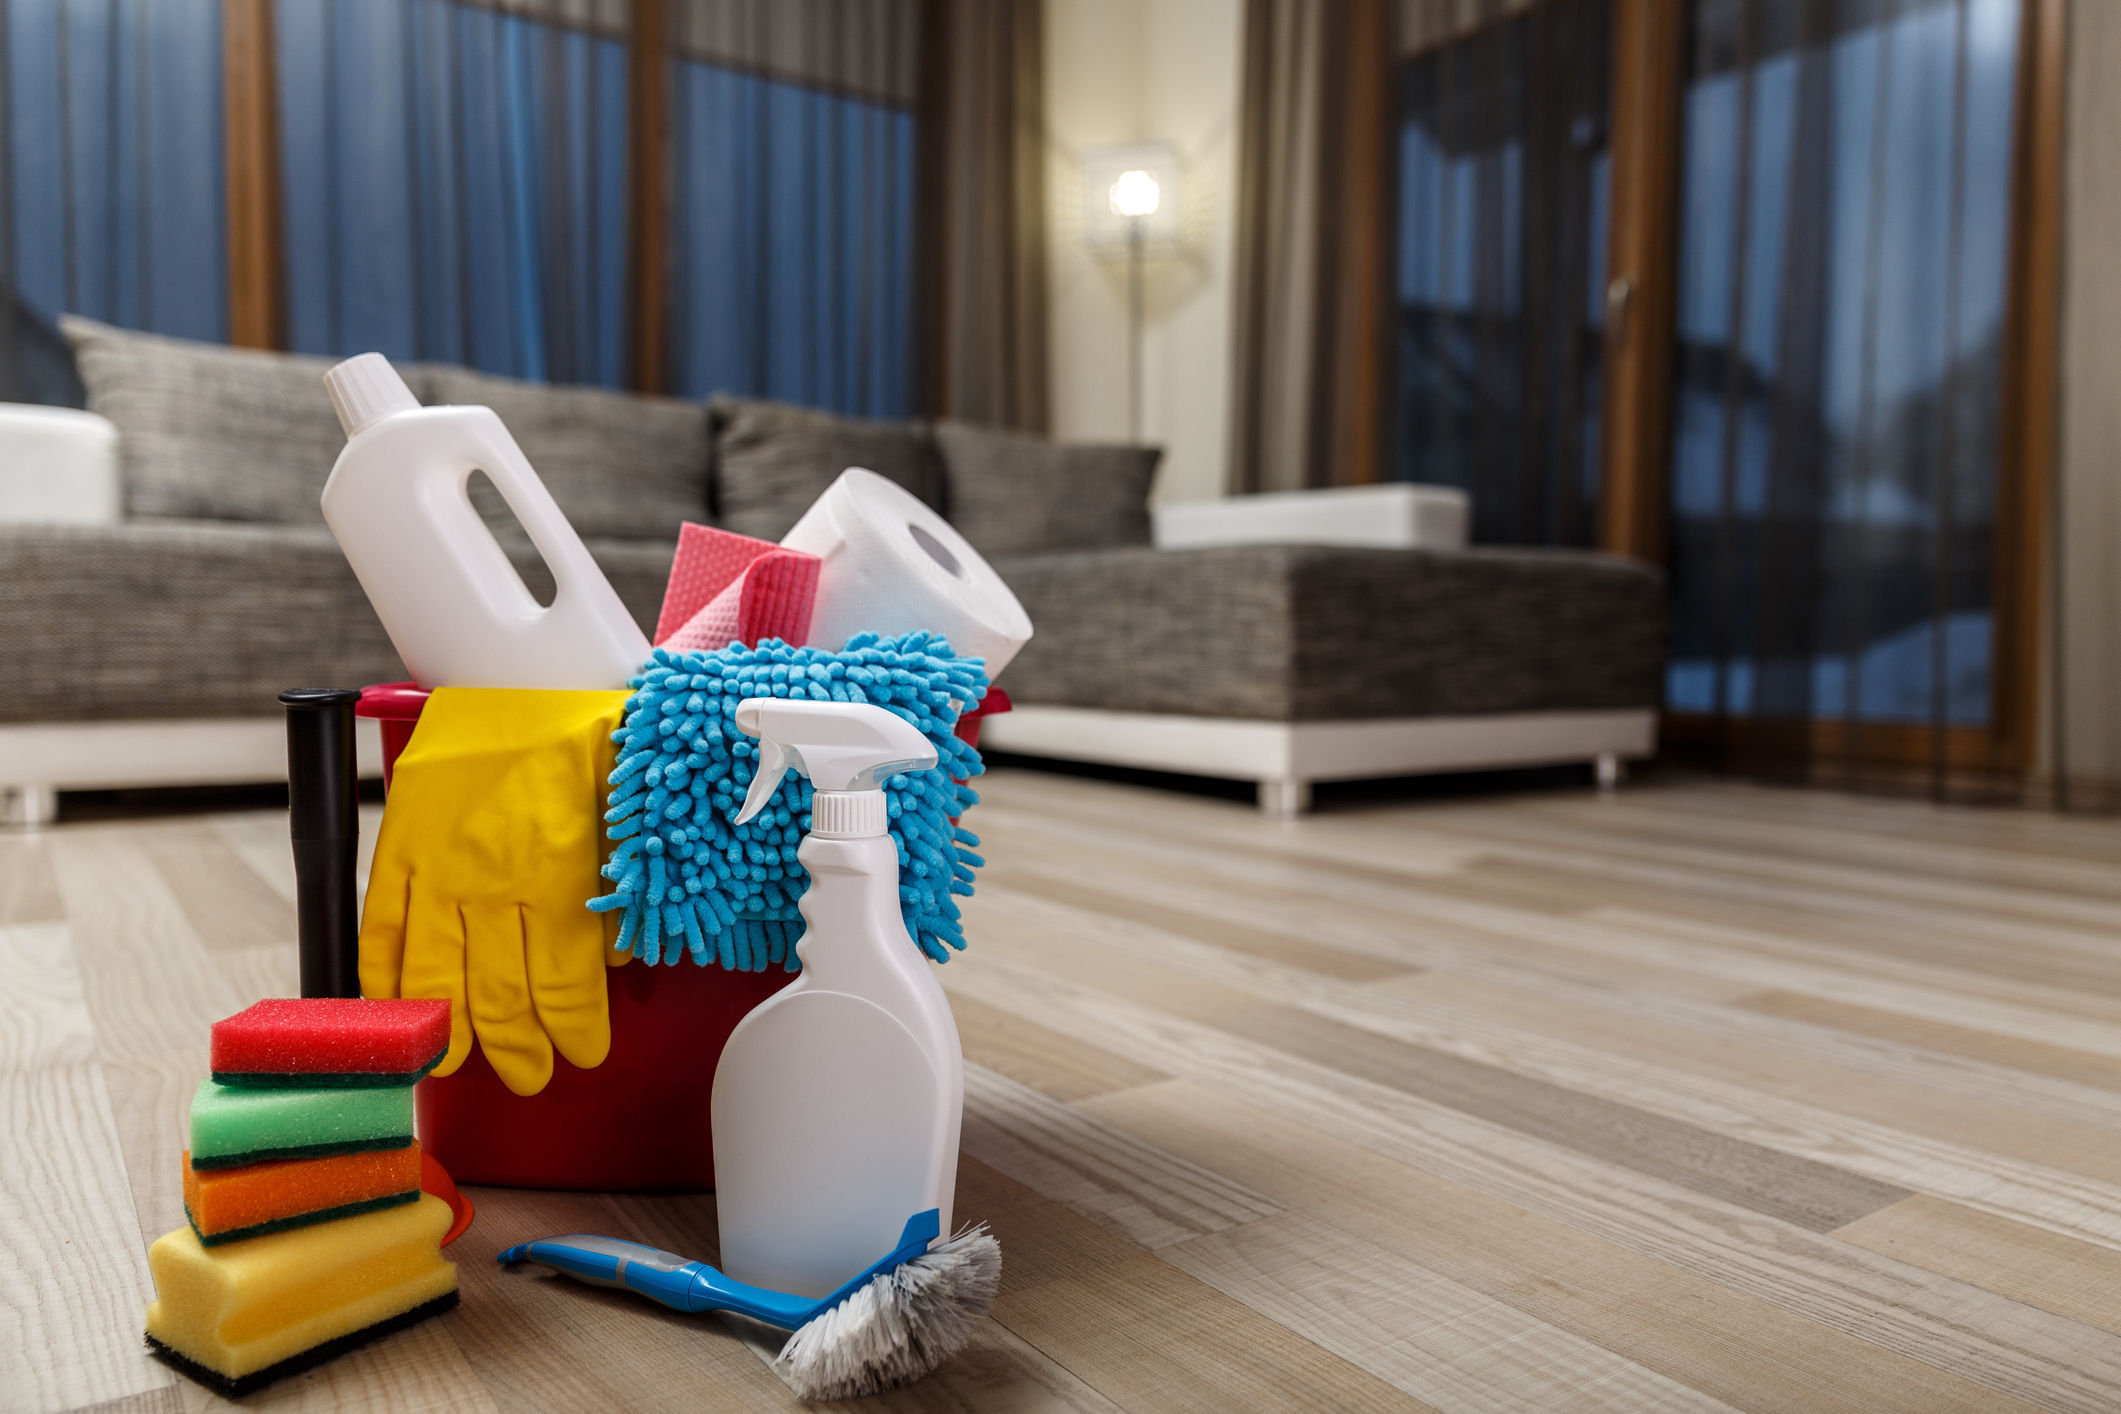 Can watching someone clean have a soothing effect on the brain? Picture: Thinkstock/PA